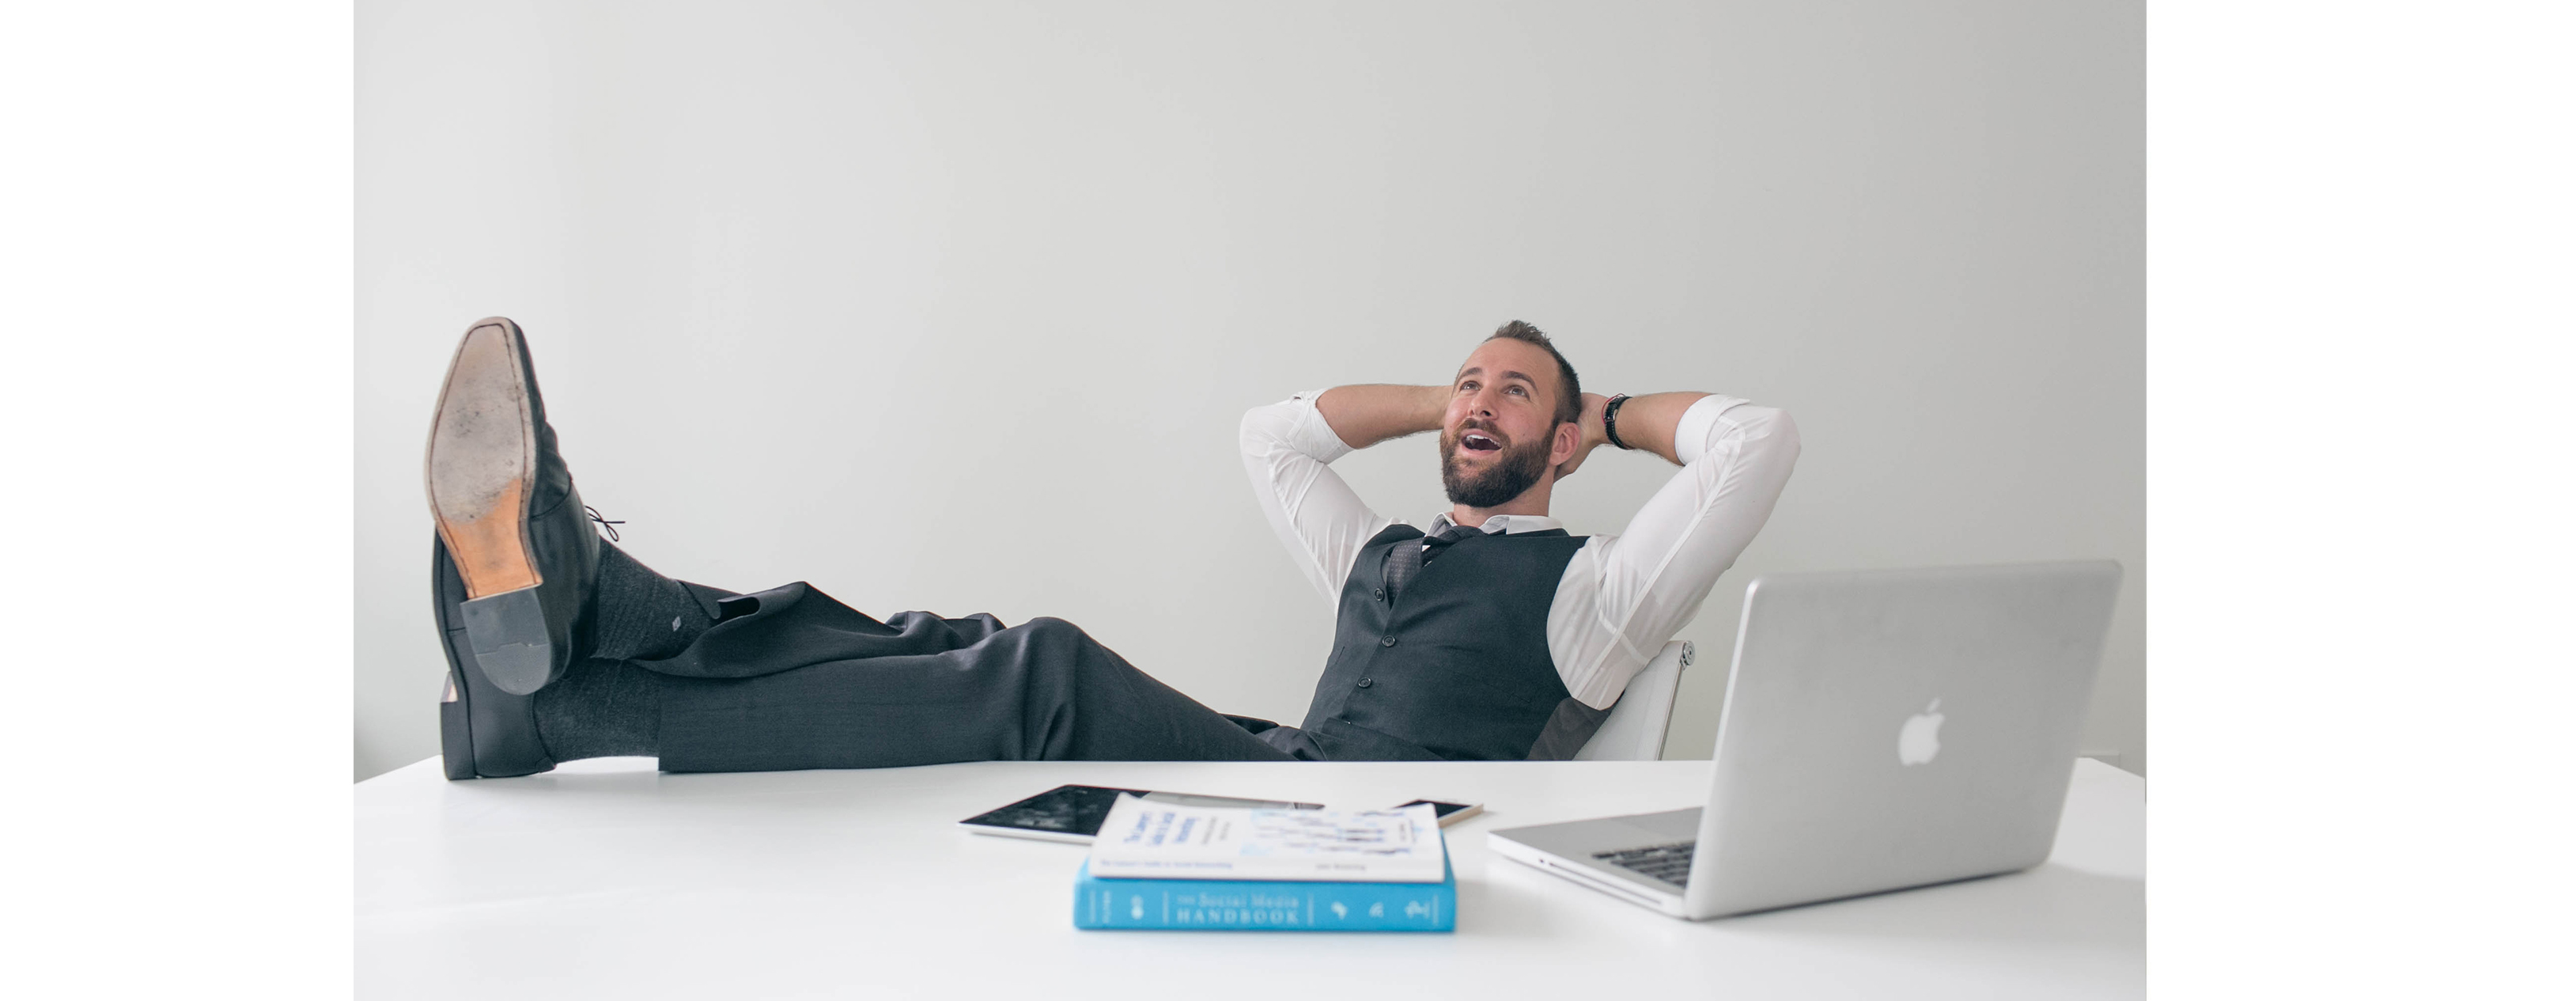 Relaxed businessman sits with his feet up on the desk